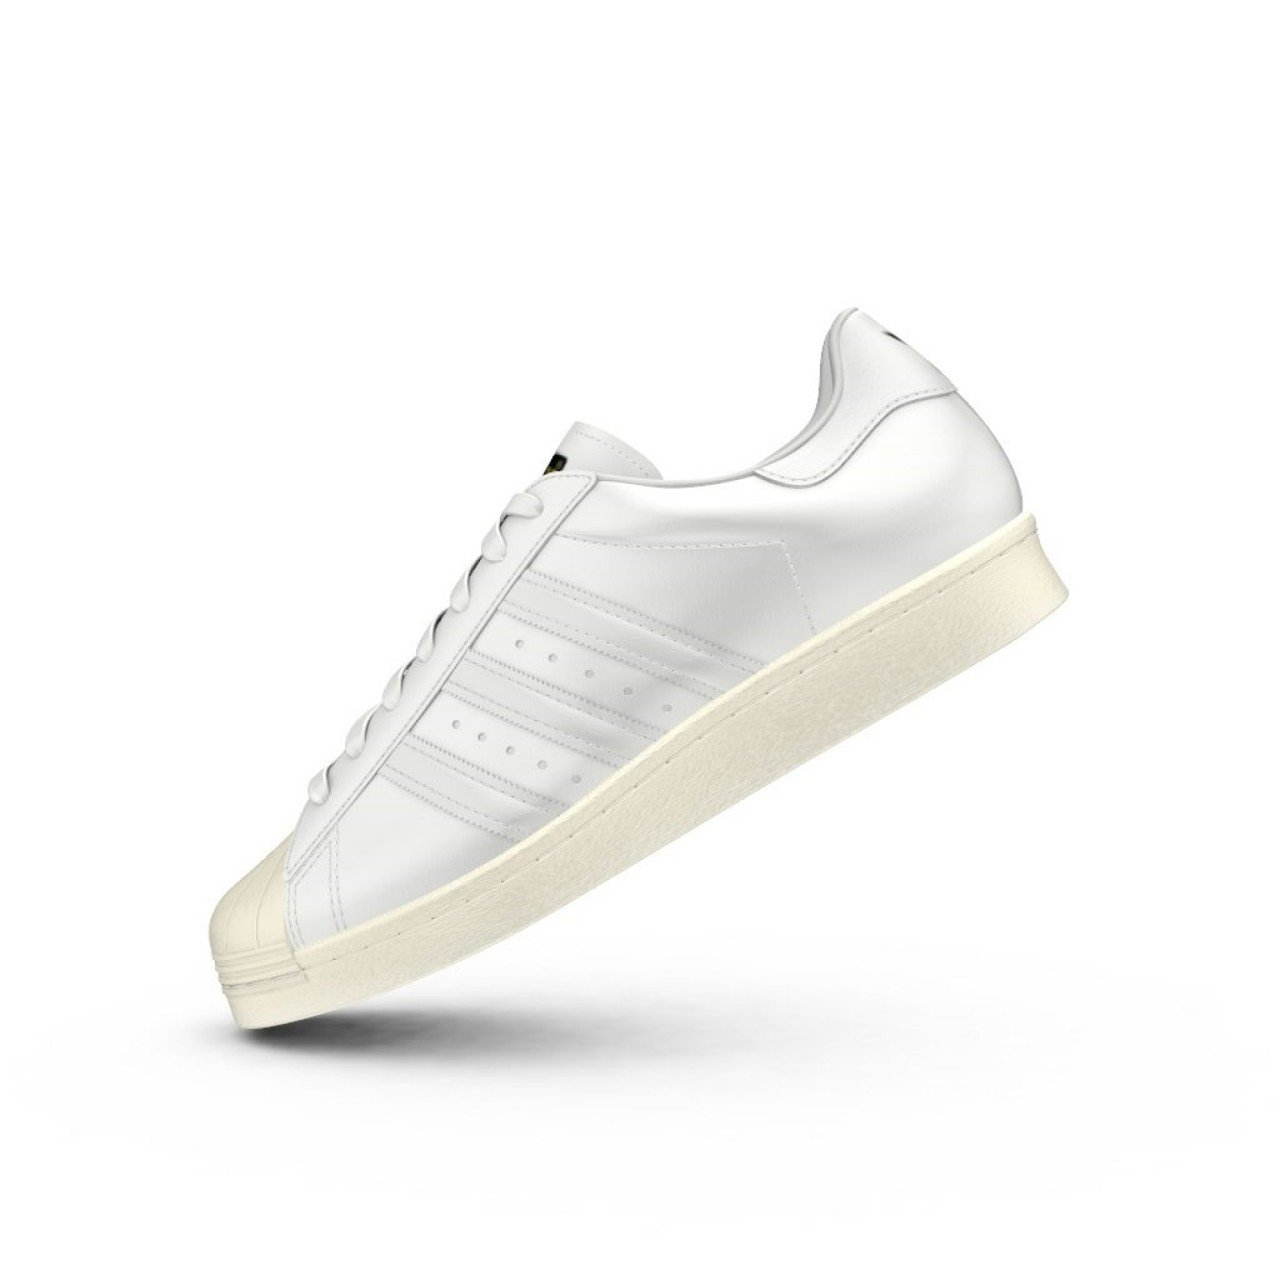 e0cff5b1c49080 Adidas Superstar 80s Deluxe DLX